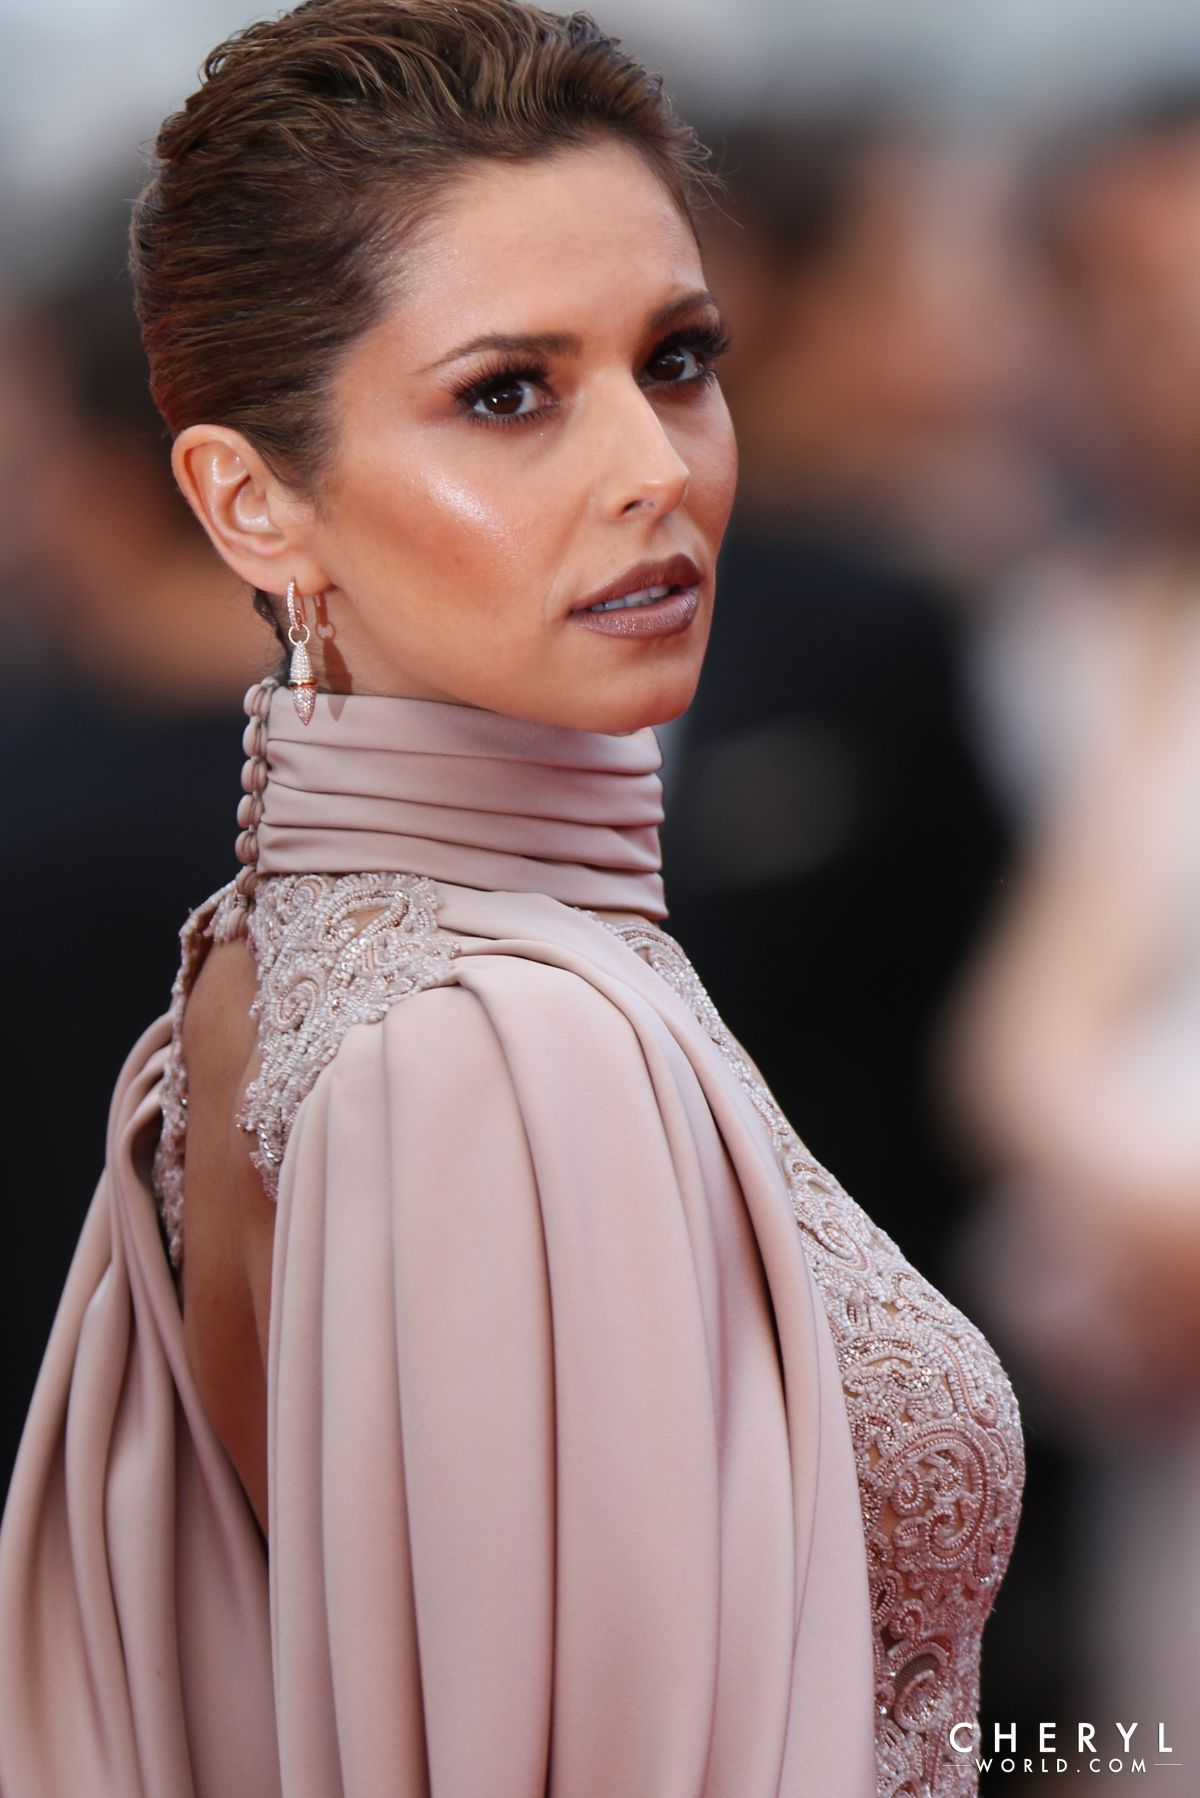 CHERYL COLE at Irrational Man Premiere in Cannes - HawtCelebs Cheryl Cole